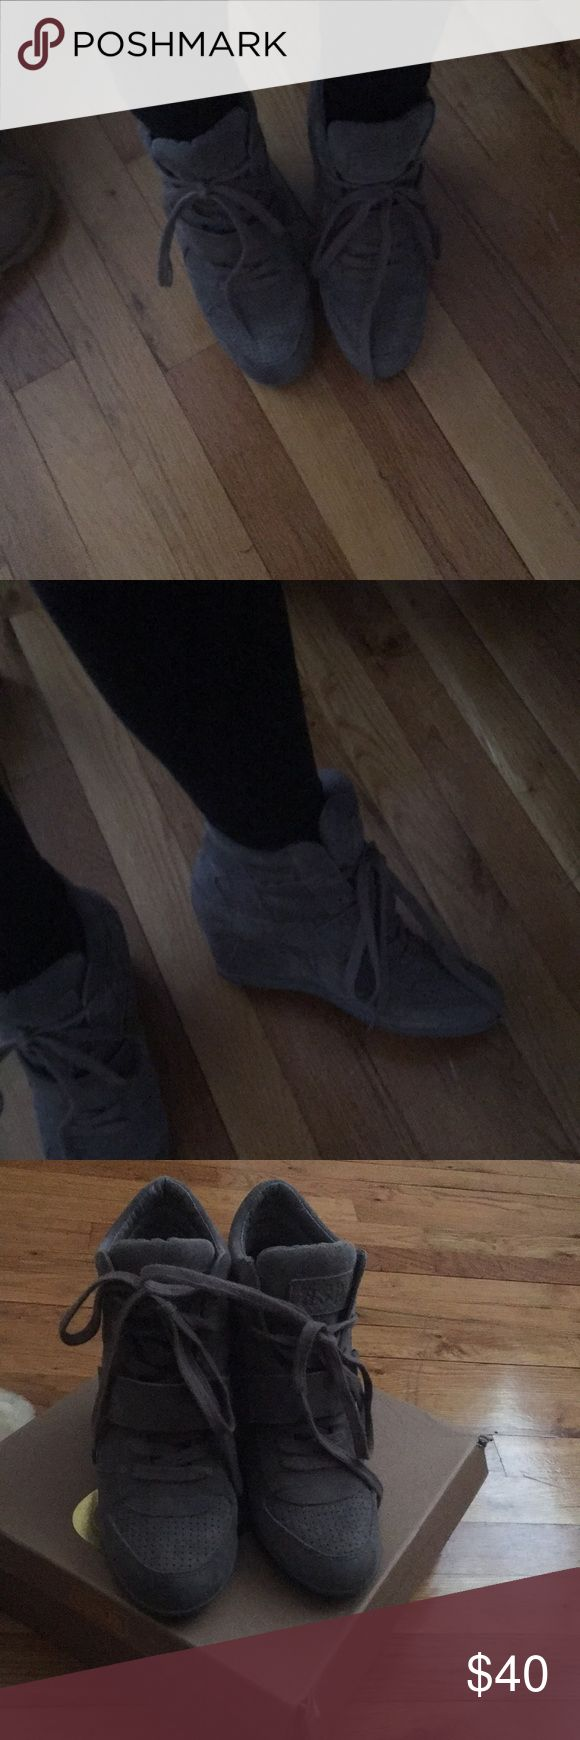 """Sneaker wedges Grey sneaker wedges . ASH sneaker wedges """"Bowie"""" . Used 4 times purchased from lord and Taylor about 3 years ago Ash Shoes Sneakers"""